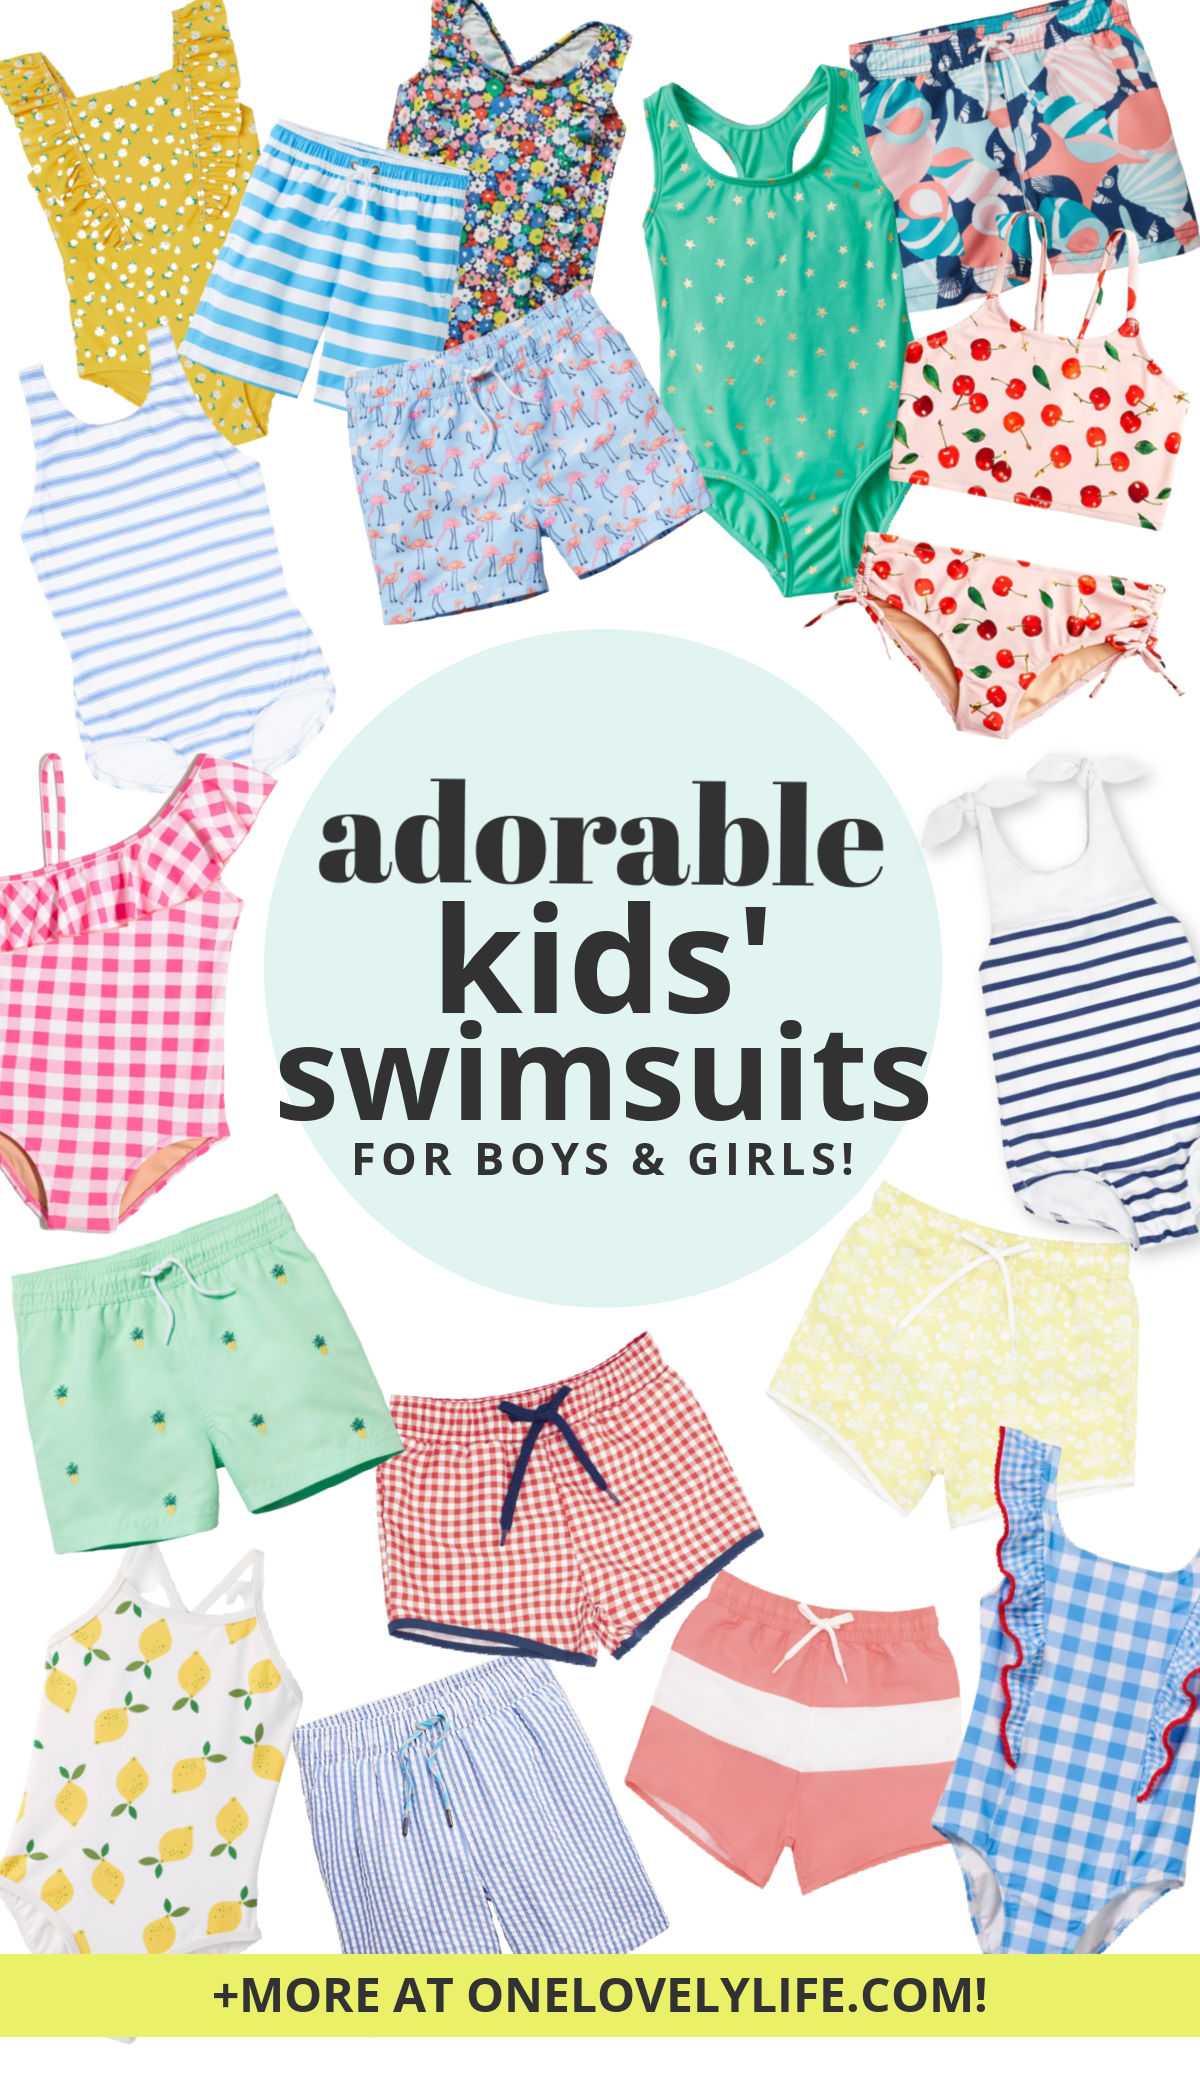 collage of cute boys and girls kids swimsuits for summer 2021 on a white background.